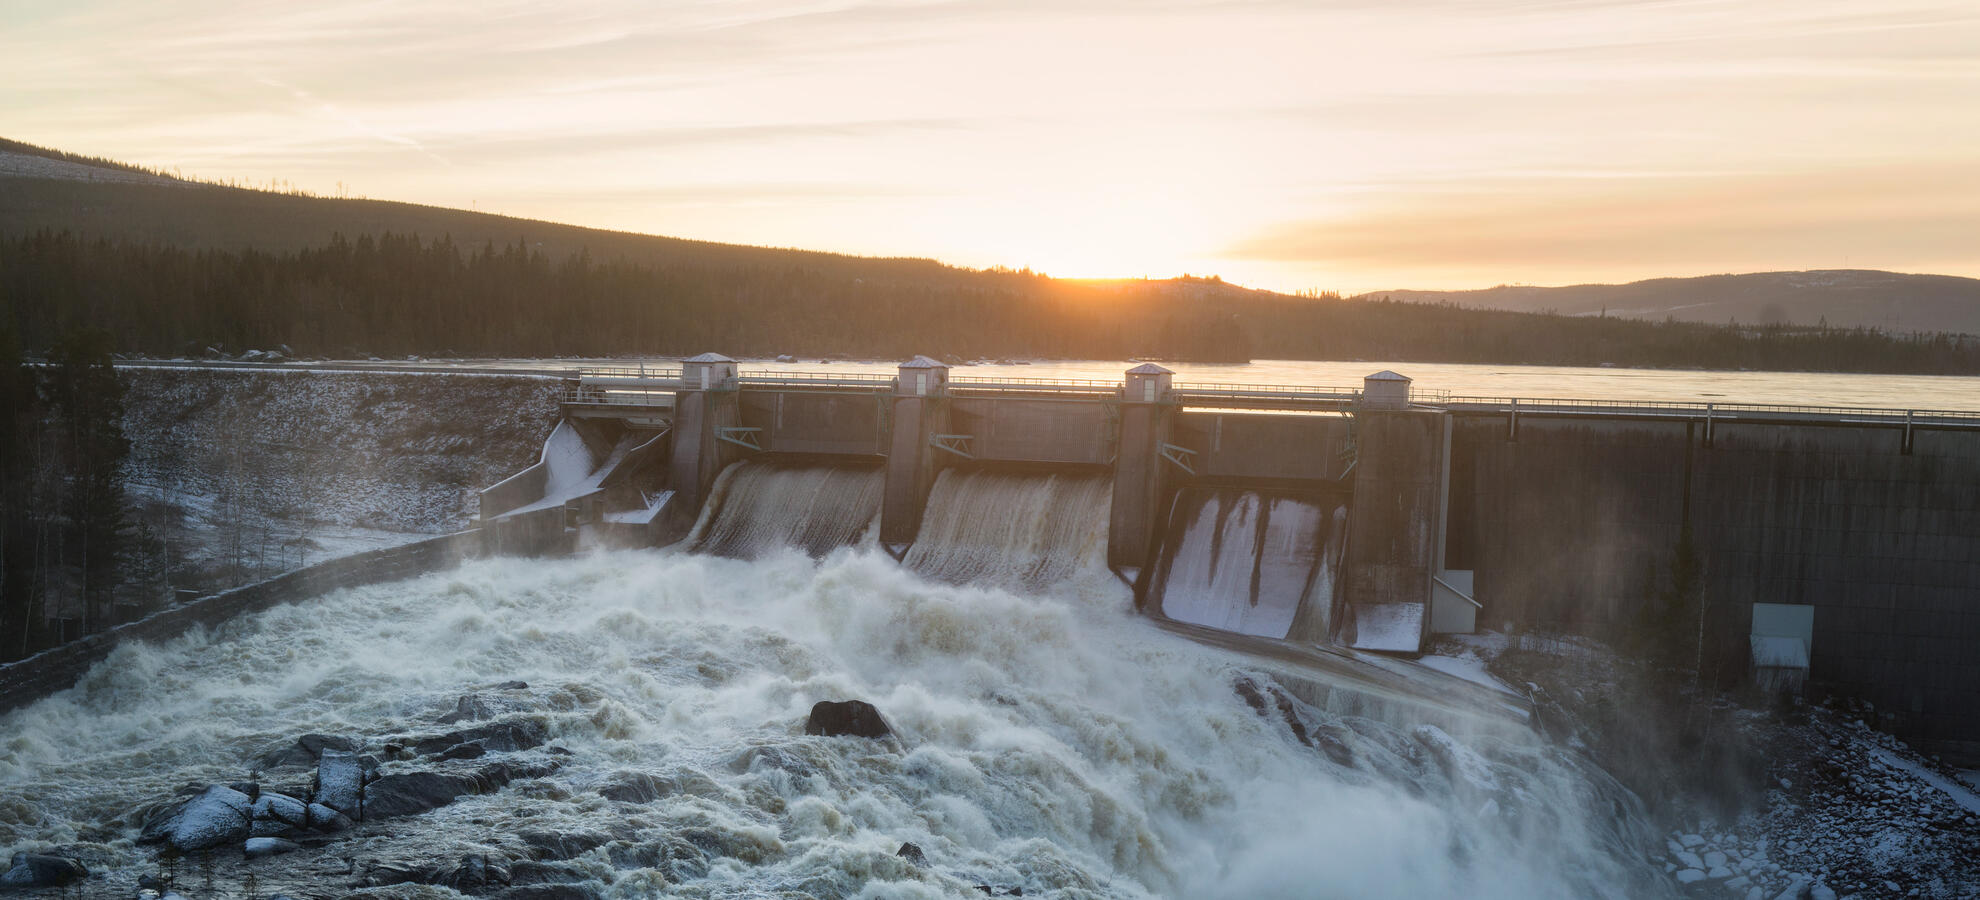 Picture of hydro plant